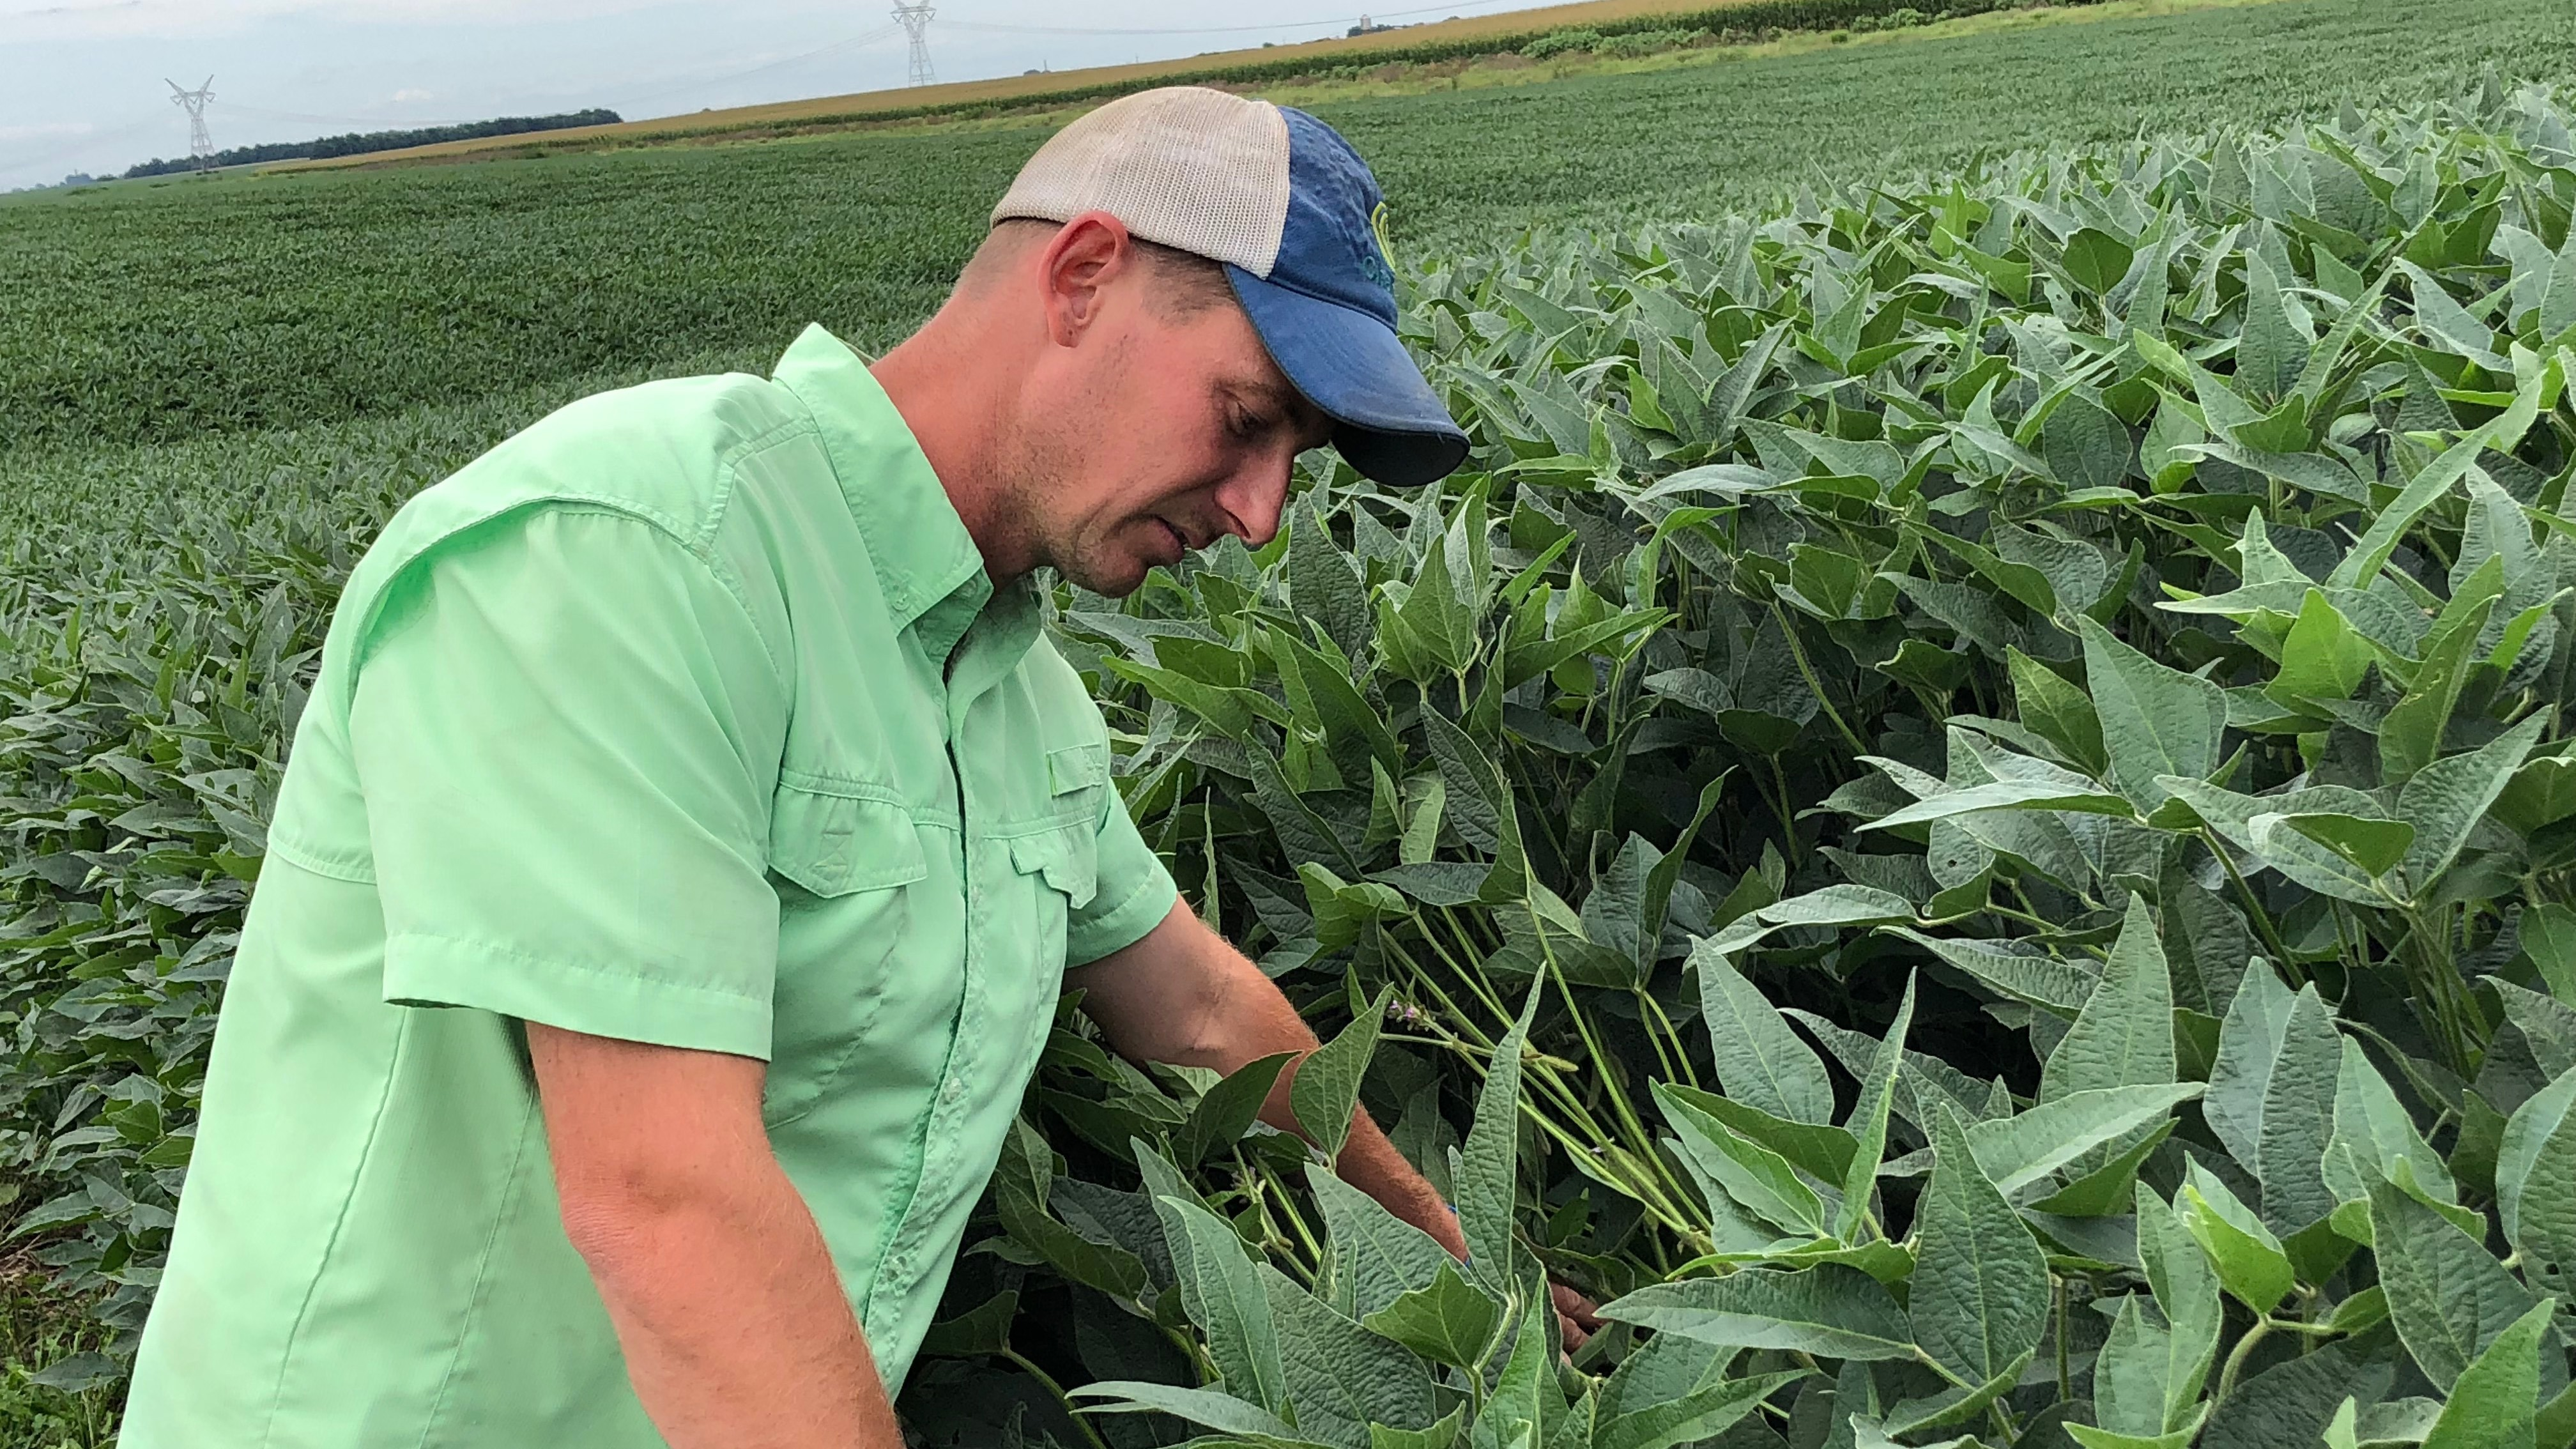 Soy farmers like Phil Sidles have seen prices for their soybeans fall sharply — down around 20 percent since May, not long after China announced retaliatory tariffs on American soybeans.